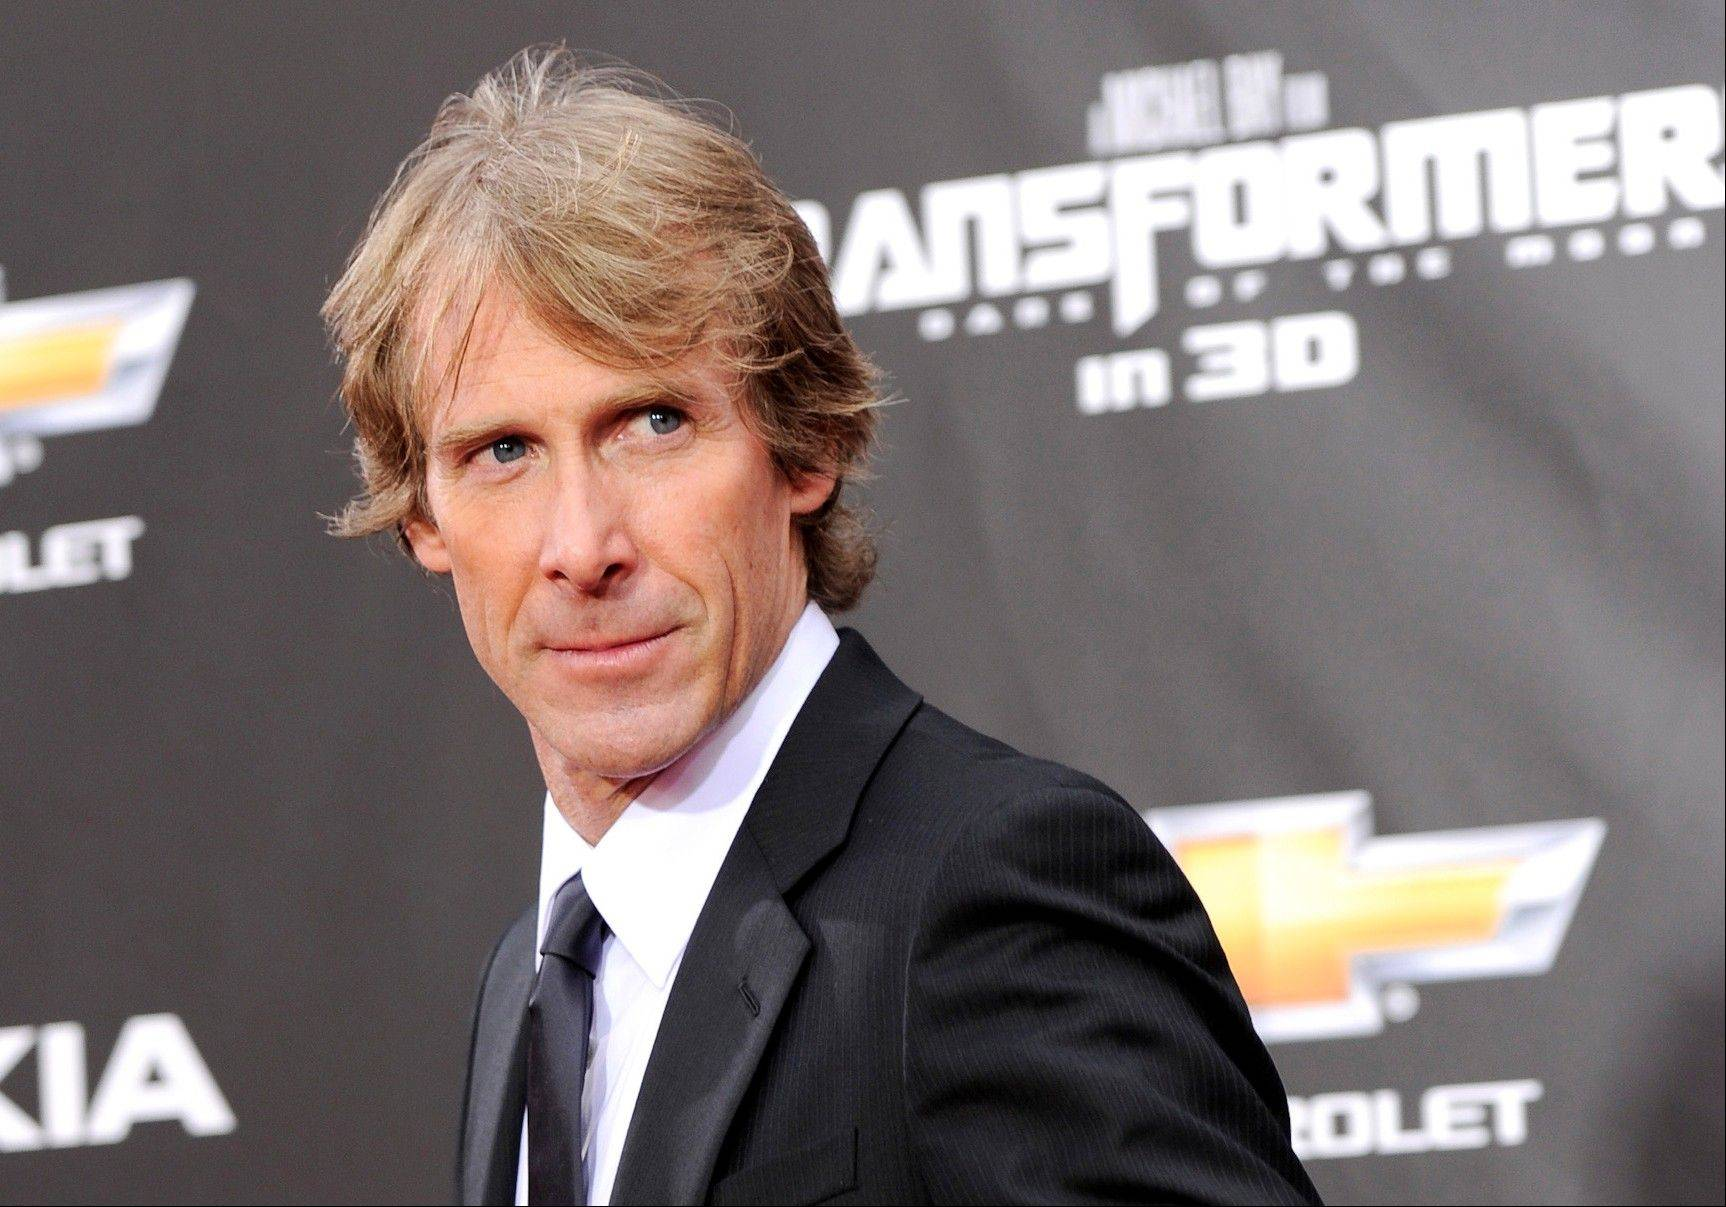 Filming of �Transformers 4� in Hong Kong was briefly suspended after director Michael Bay fell victim to an extortion attempt in which he was slightly injured, according to media reports and police Thursday.